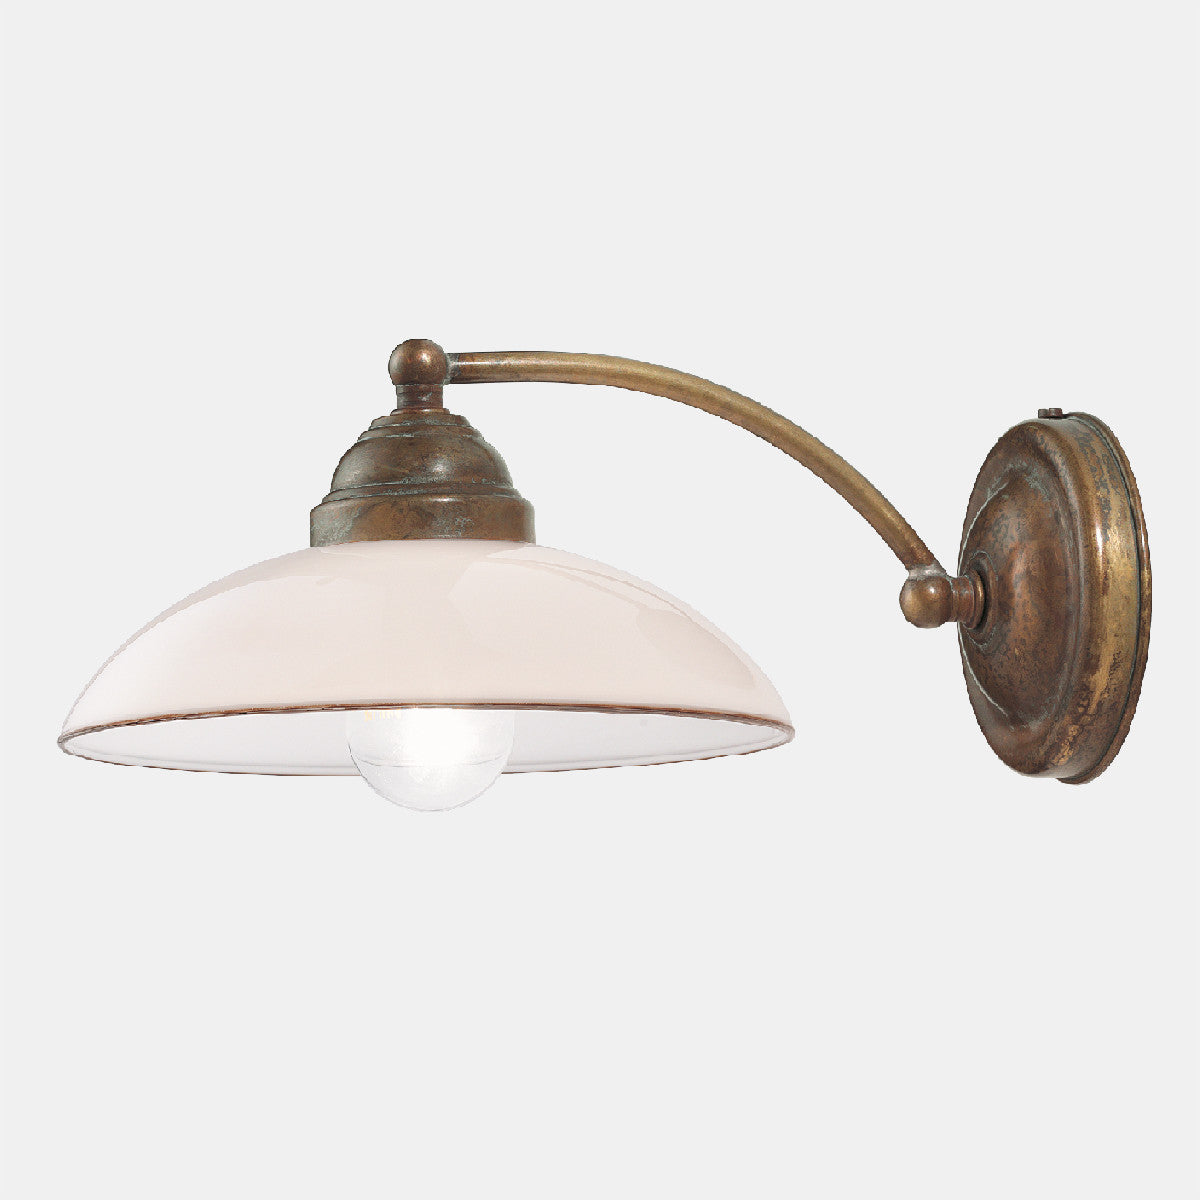 COUNTRY Wall Light 082.17.OV